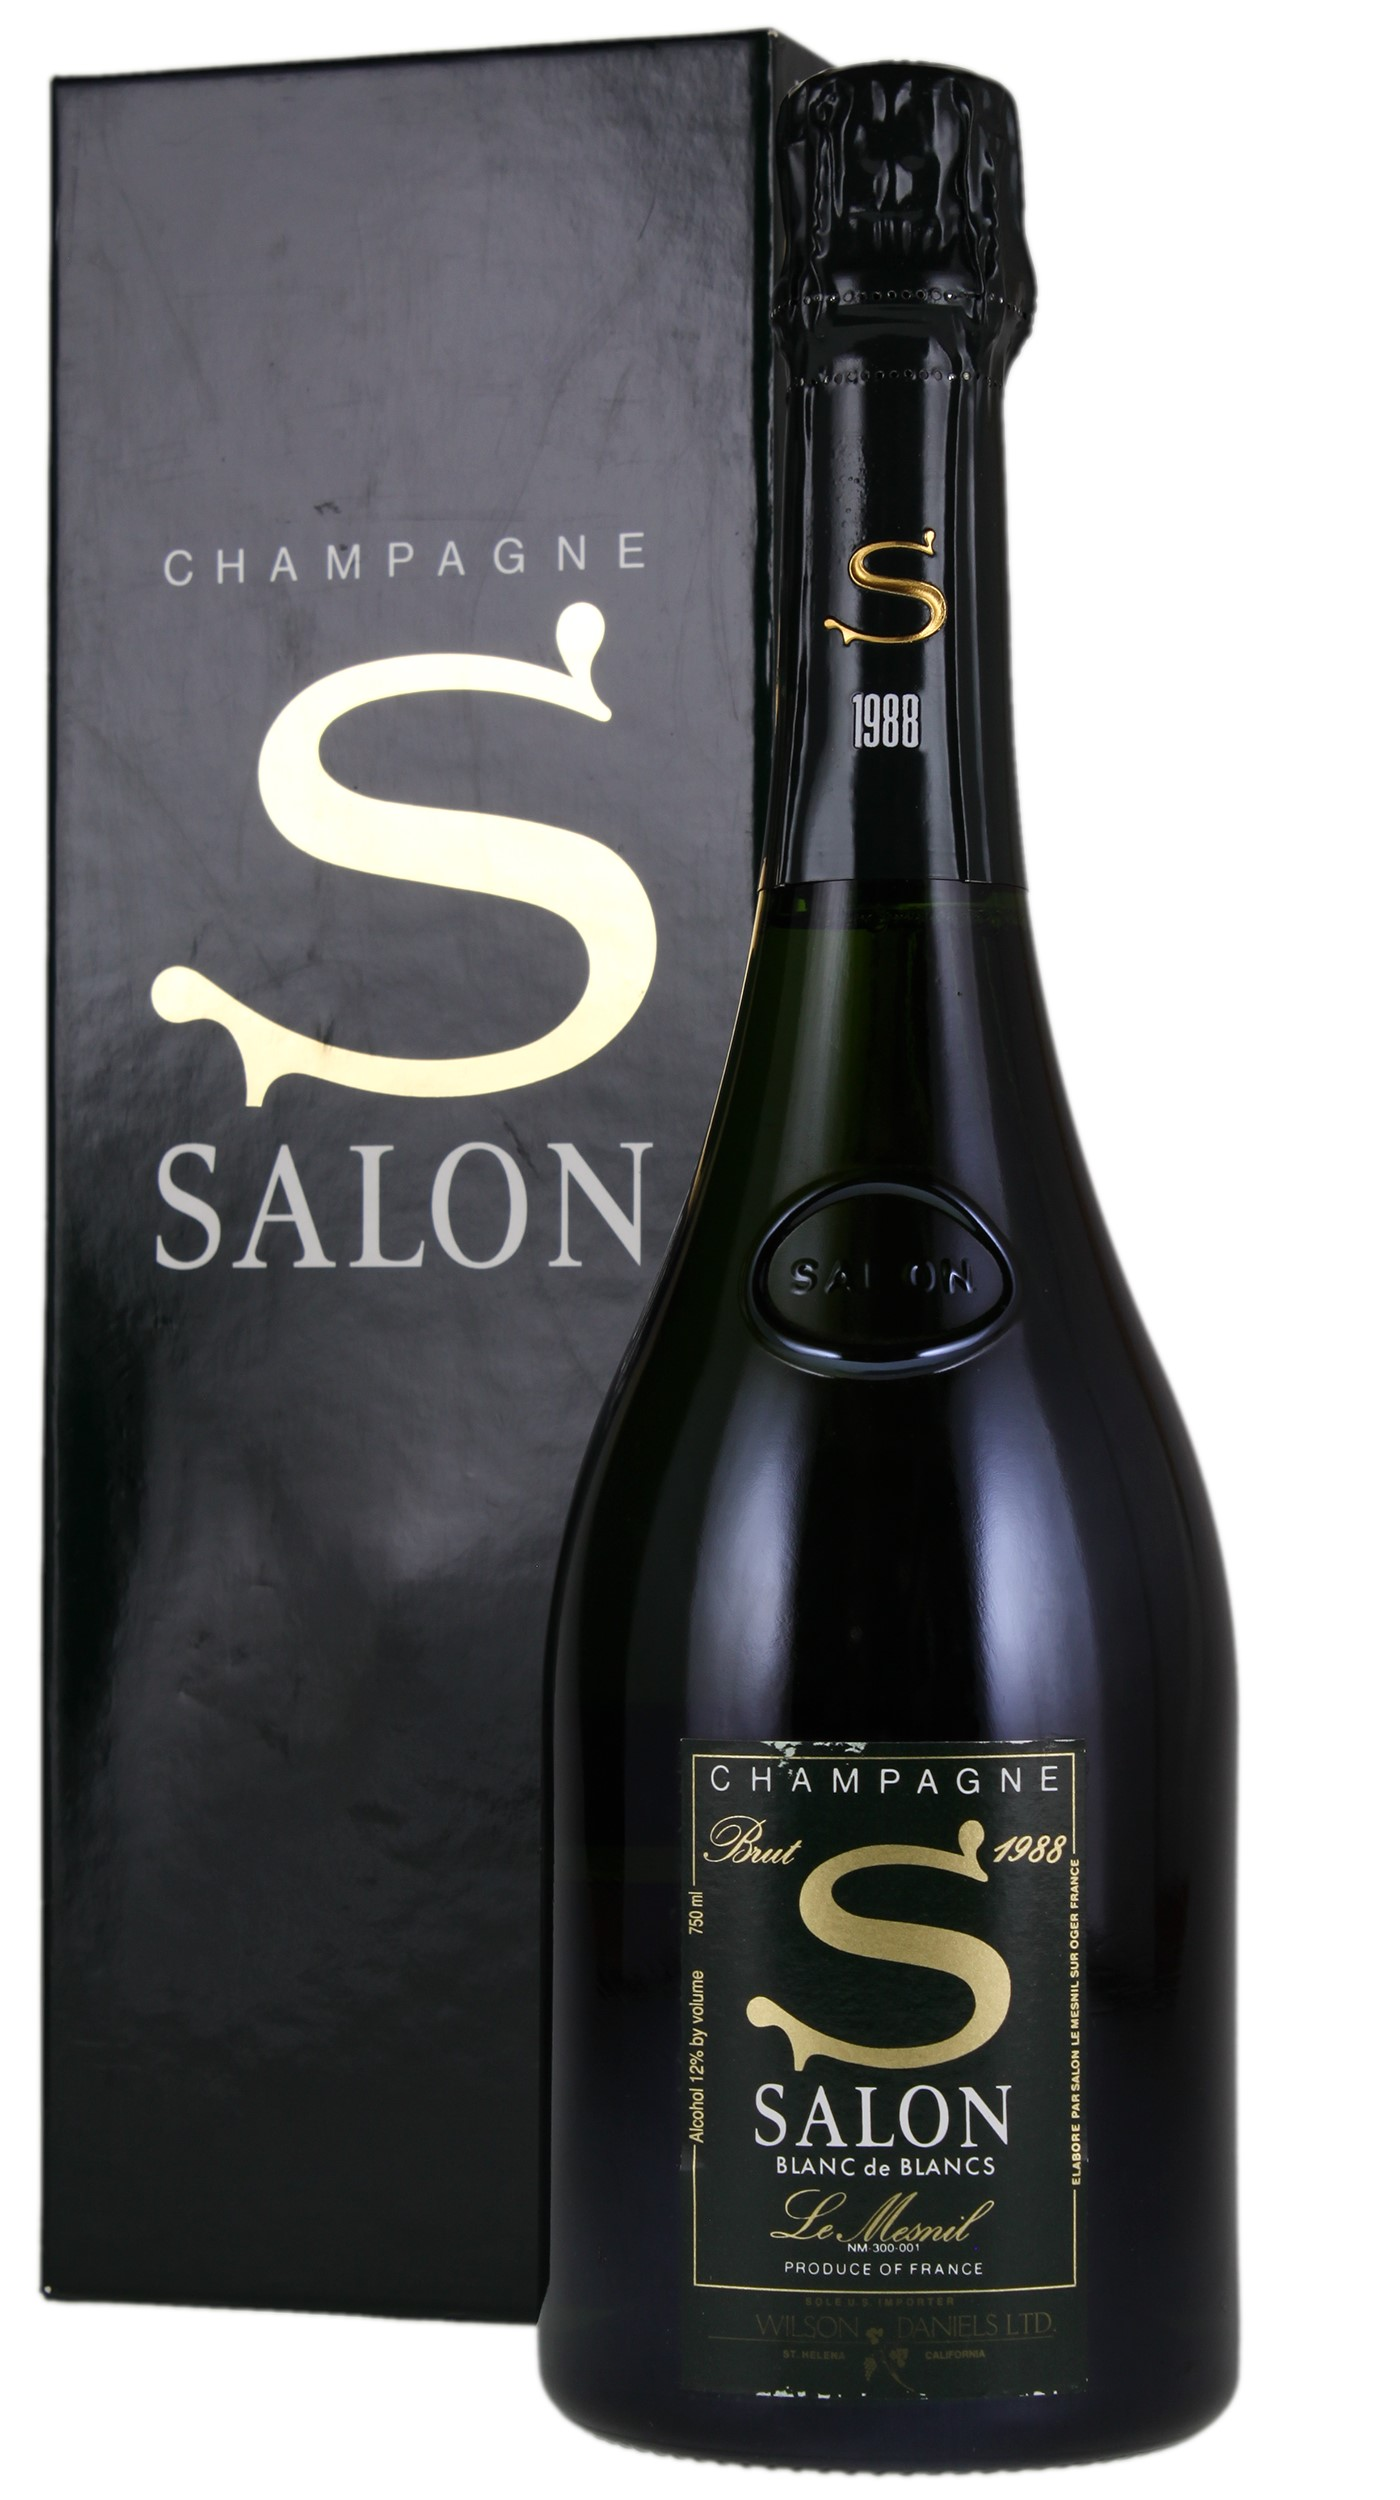 Salon Le Mesnil Blanc de Blancs 1988, Sparkling from France - WineBid